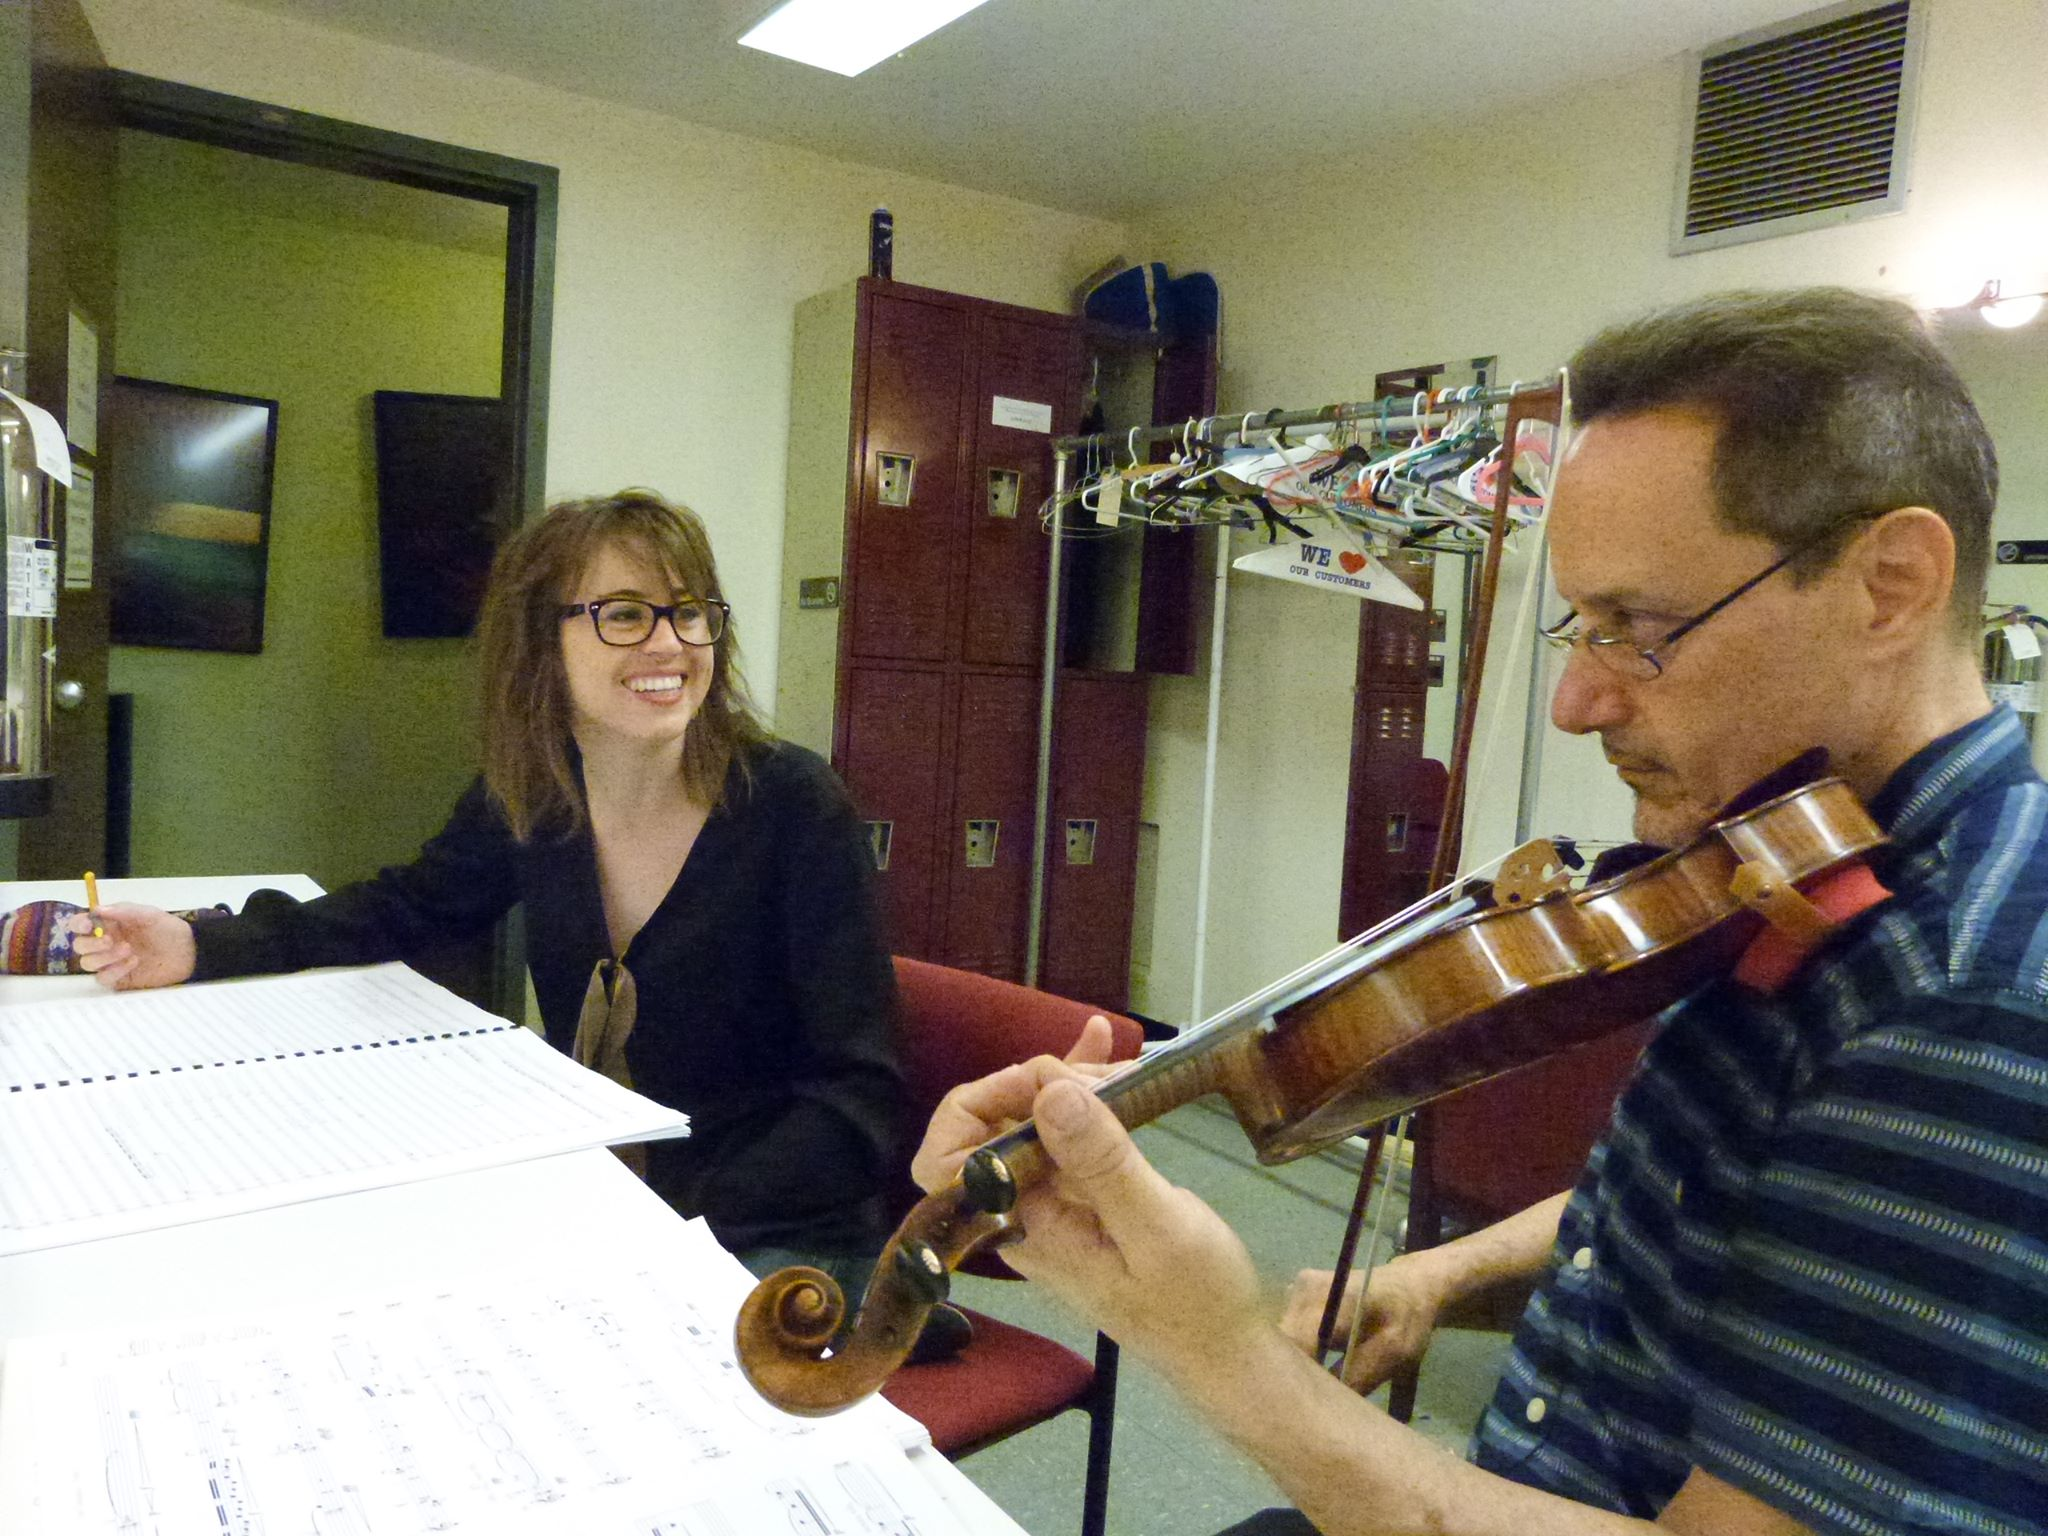 working with ACO's concertmaster Robert Chausow as part of the 25th annual Underwood New Music Readings